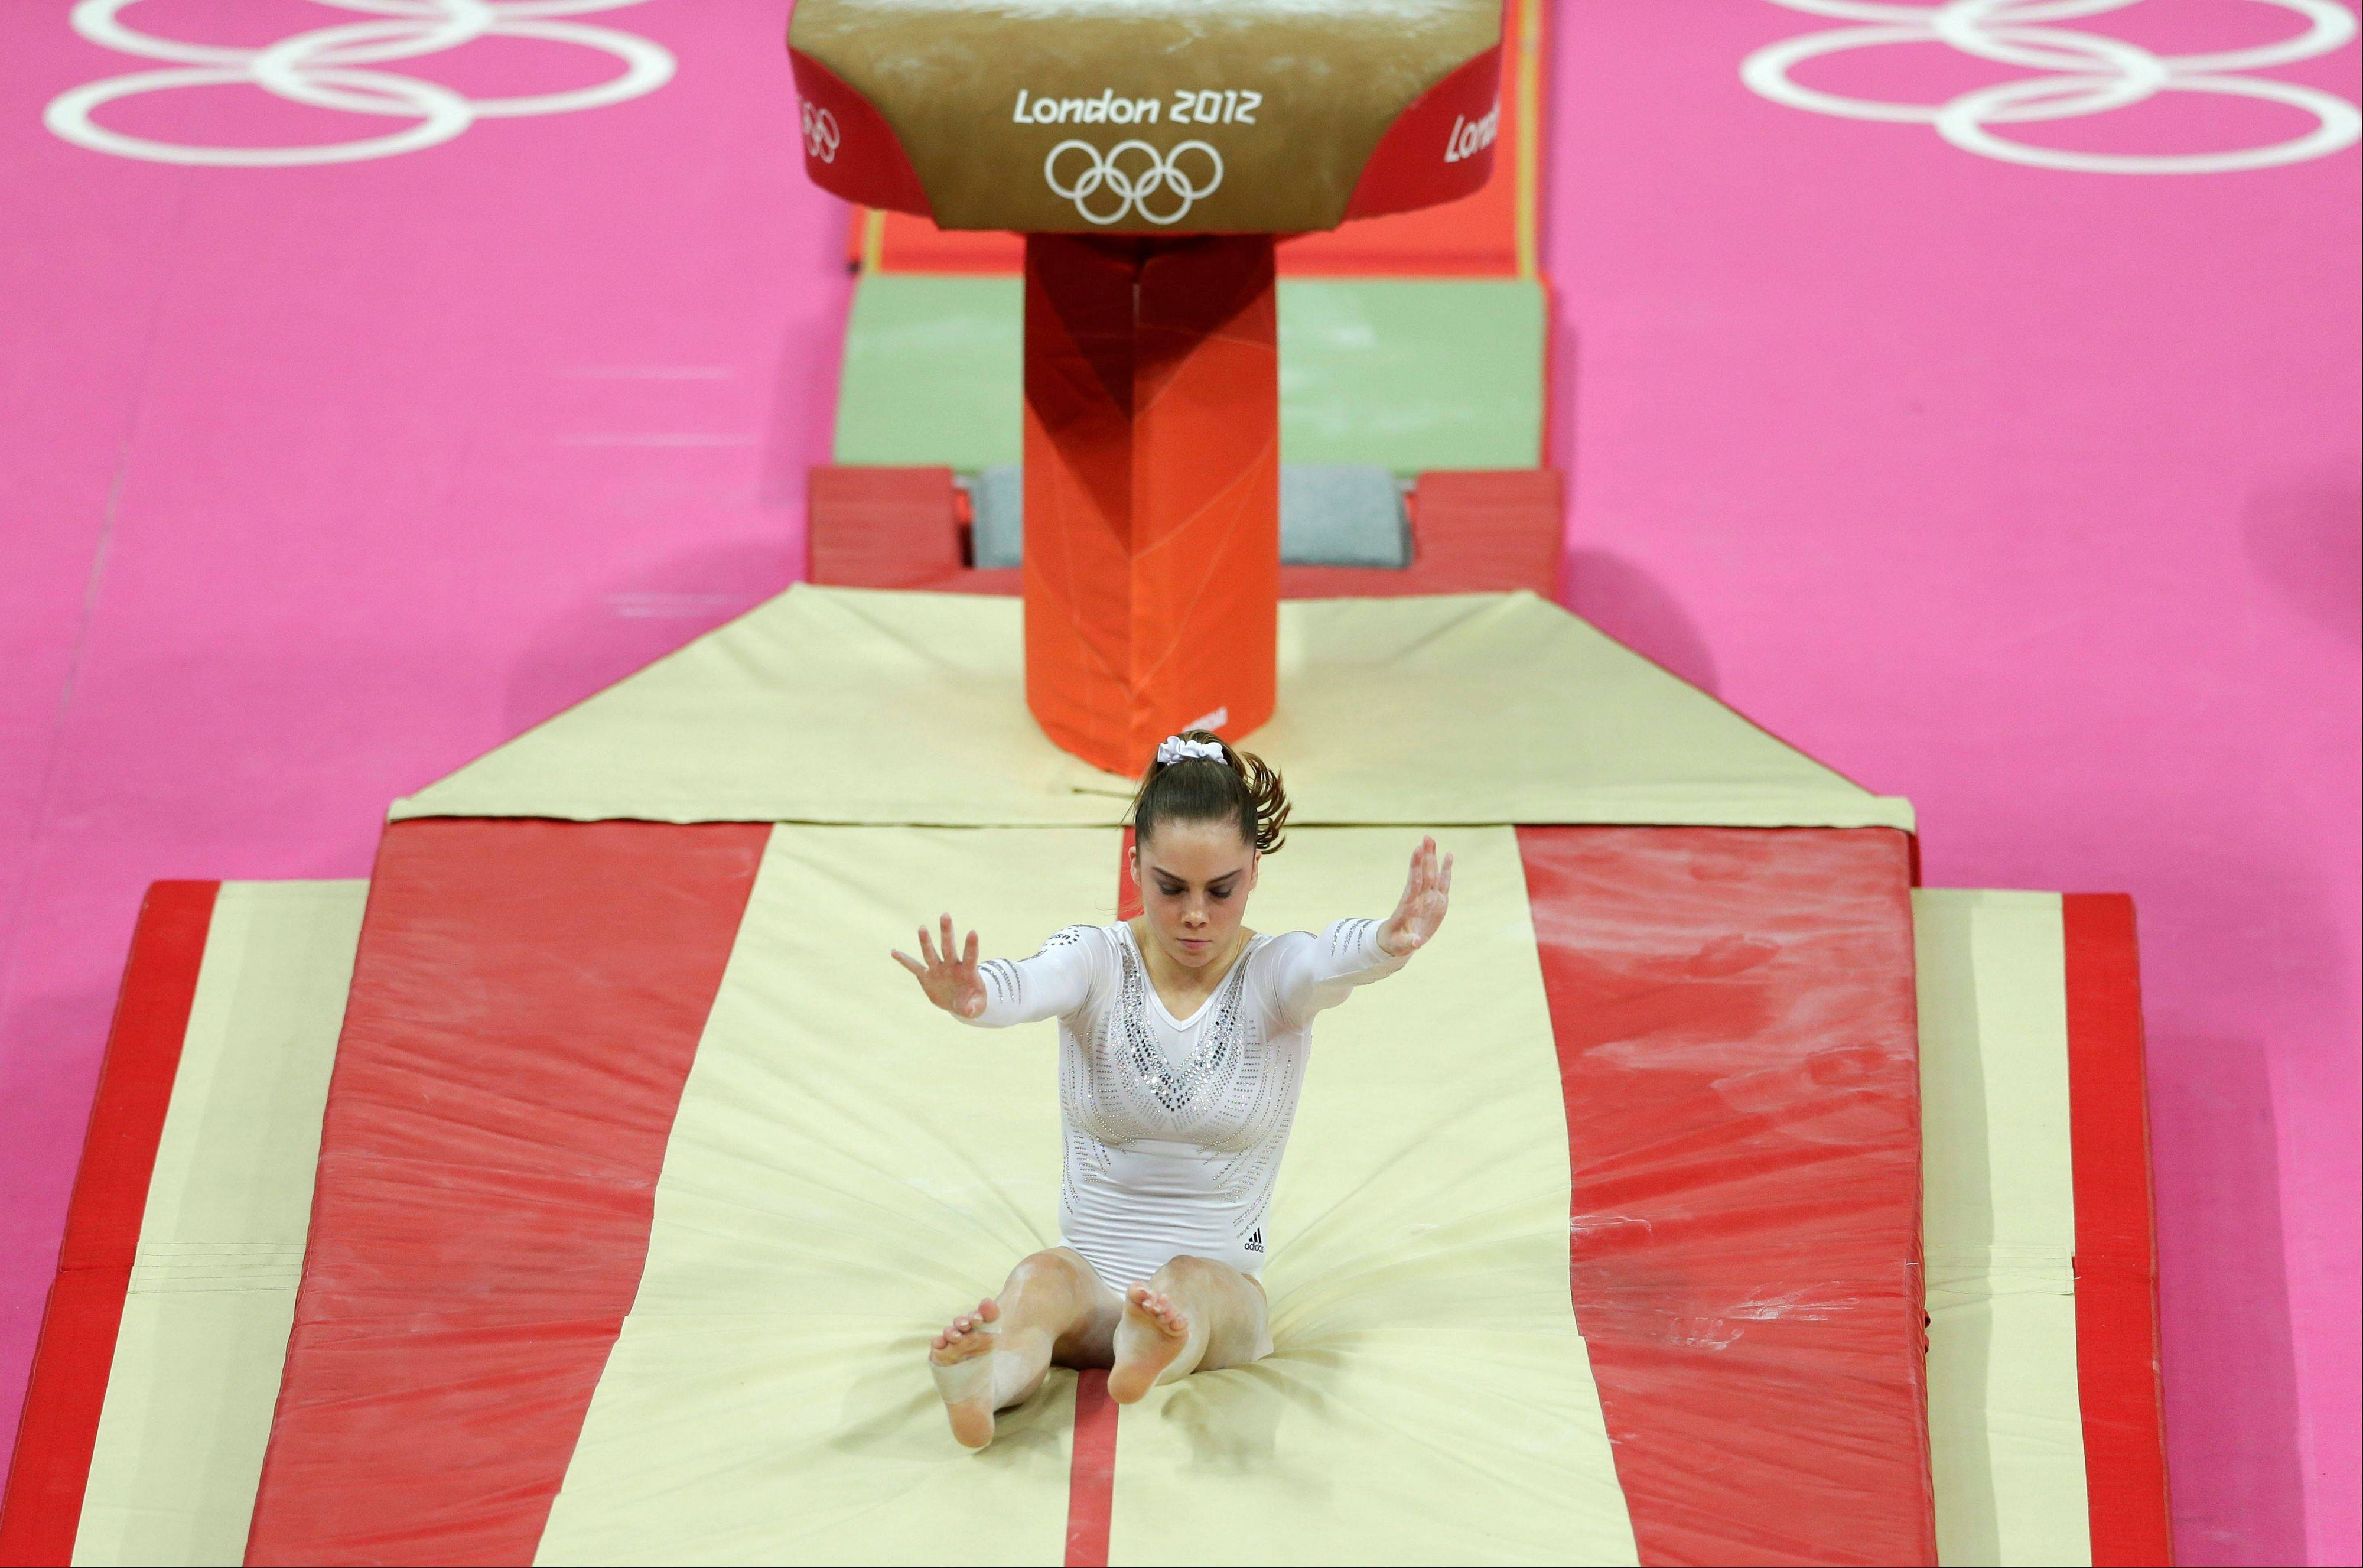 U.S. gymnast McKayla Maroney botches her dismount in the women's vault final at the 2012 Summer Olympics in London.